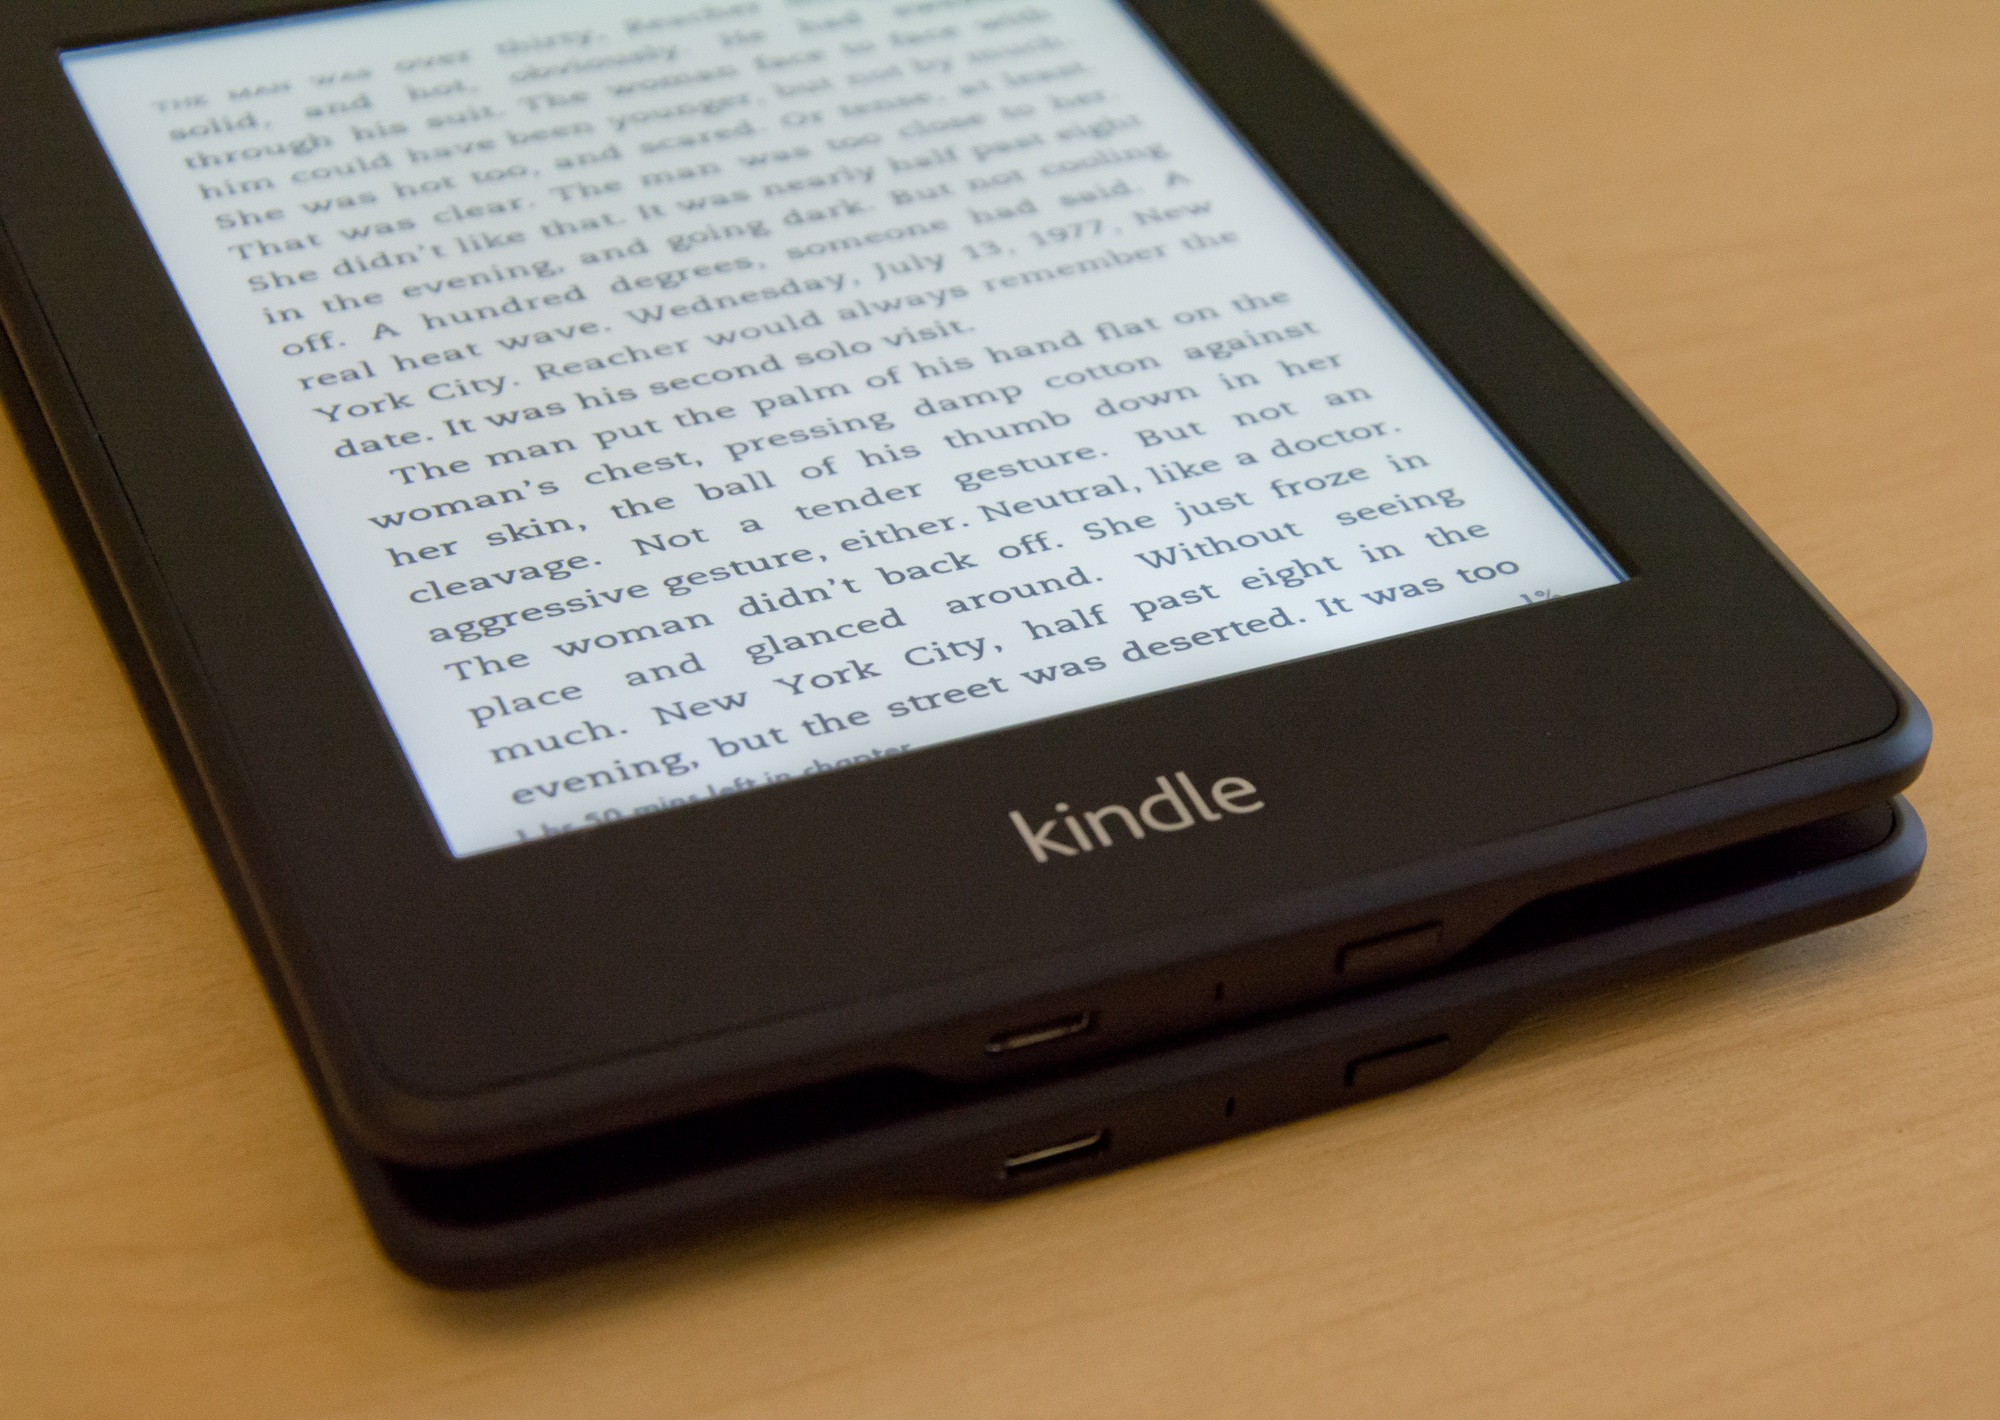 El Kindle